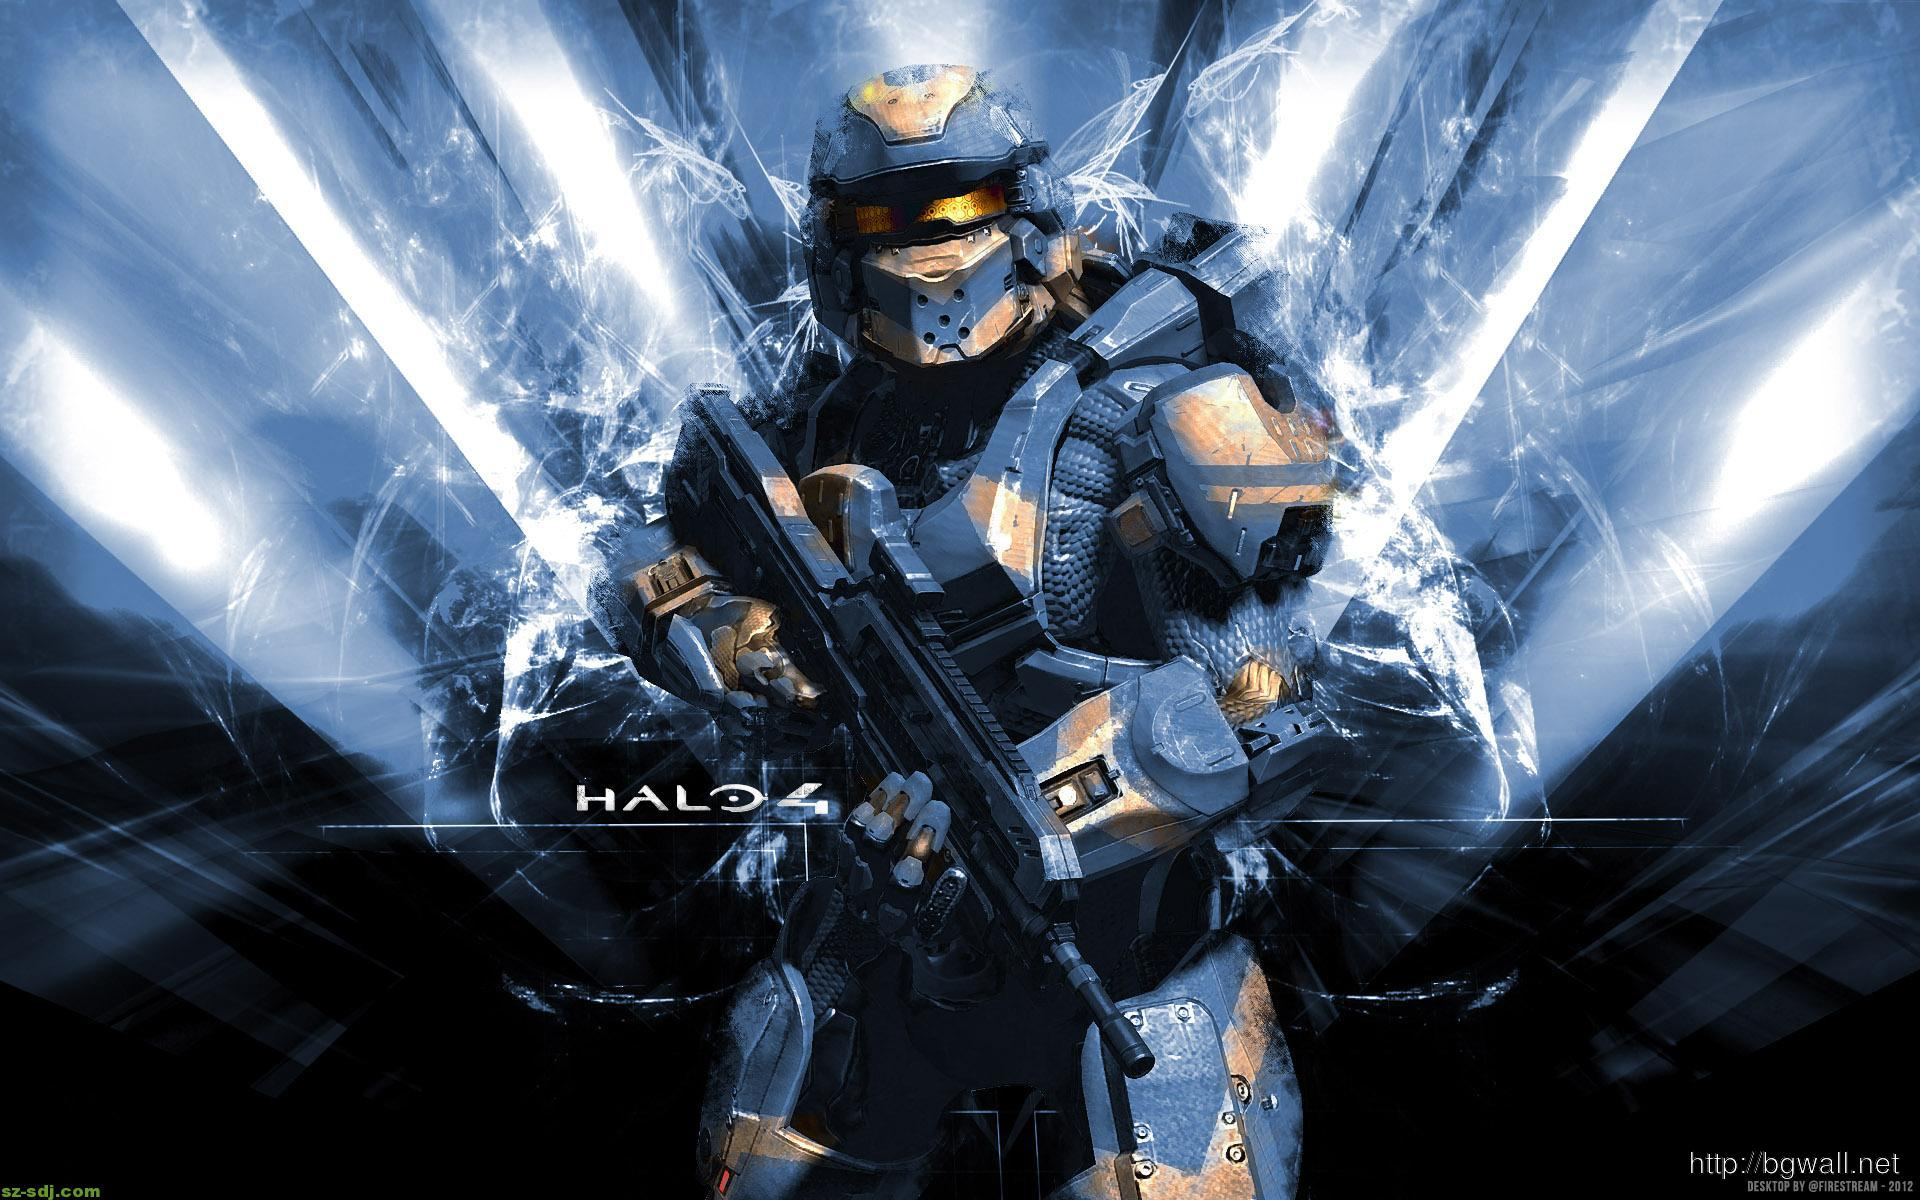 Halo 4 Background Wallpaper Widescreen